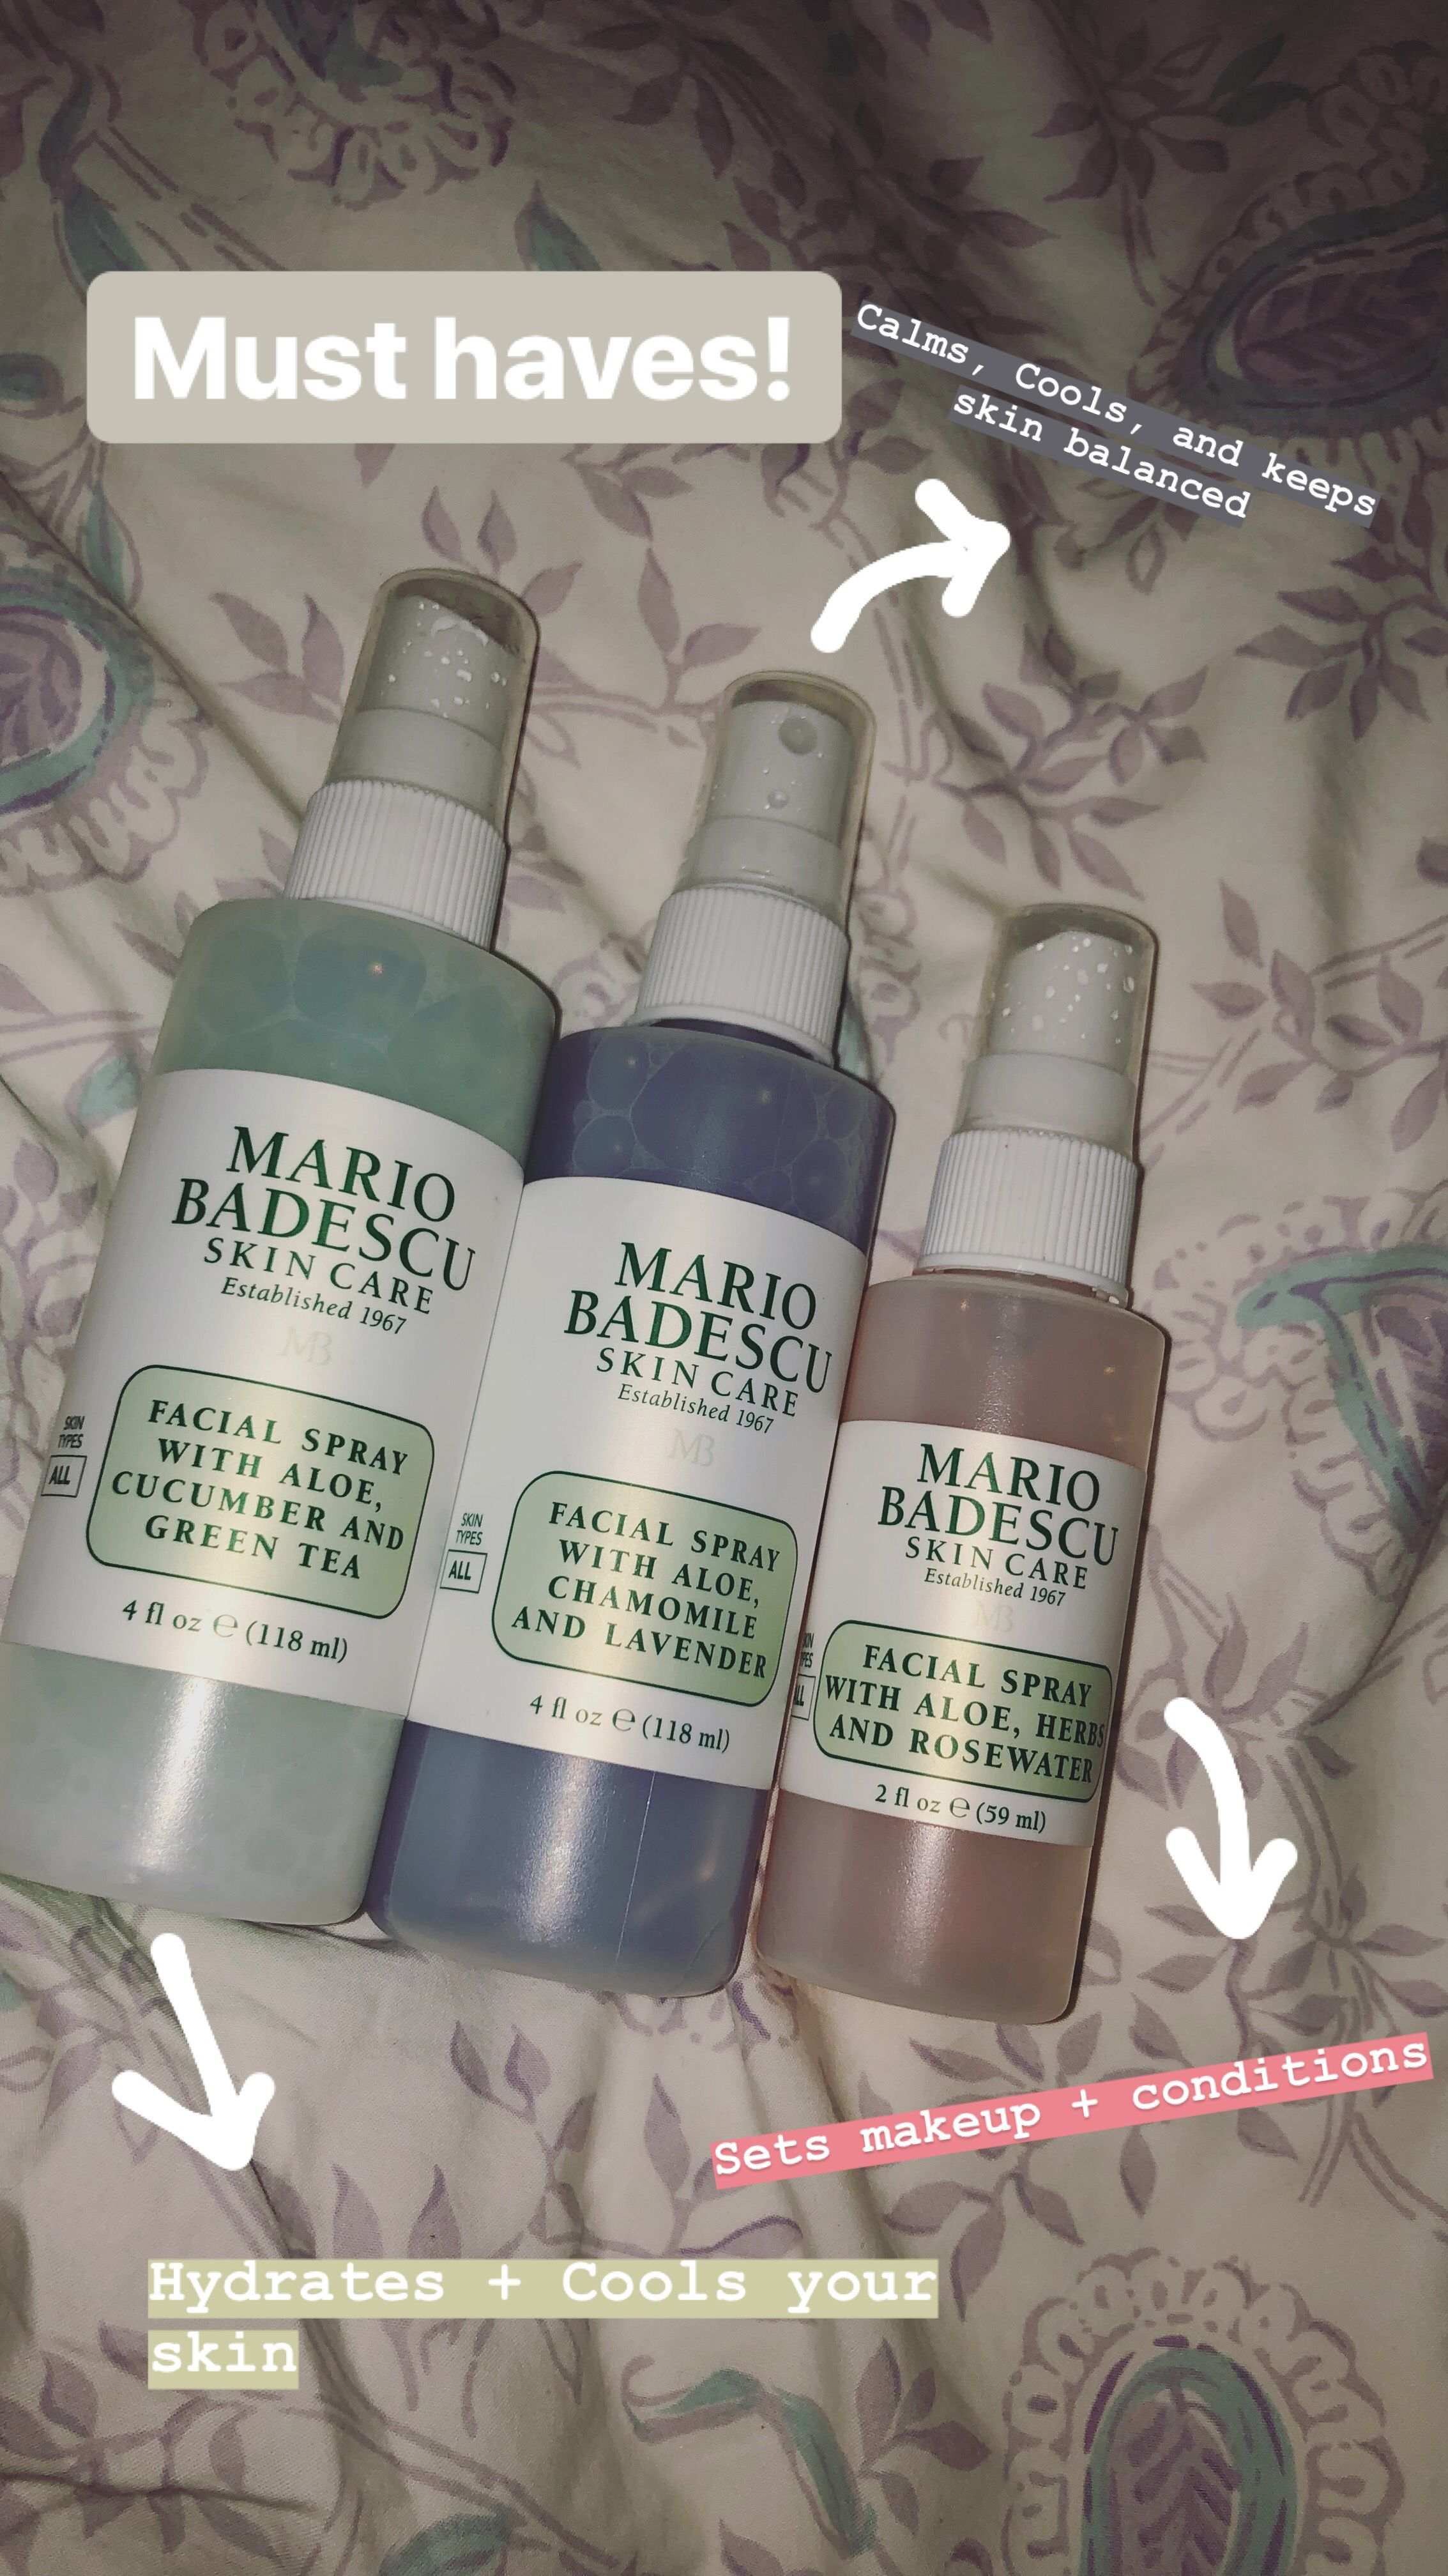 I Love These Facial Sprays From Mario Bedescu I Use Them